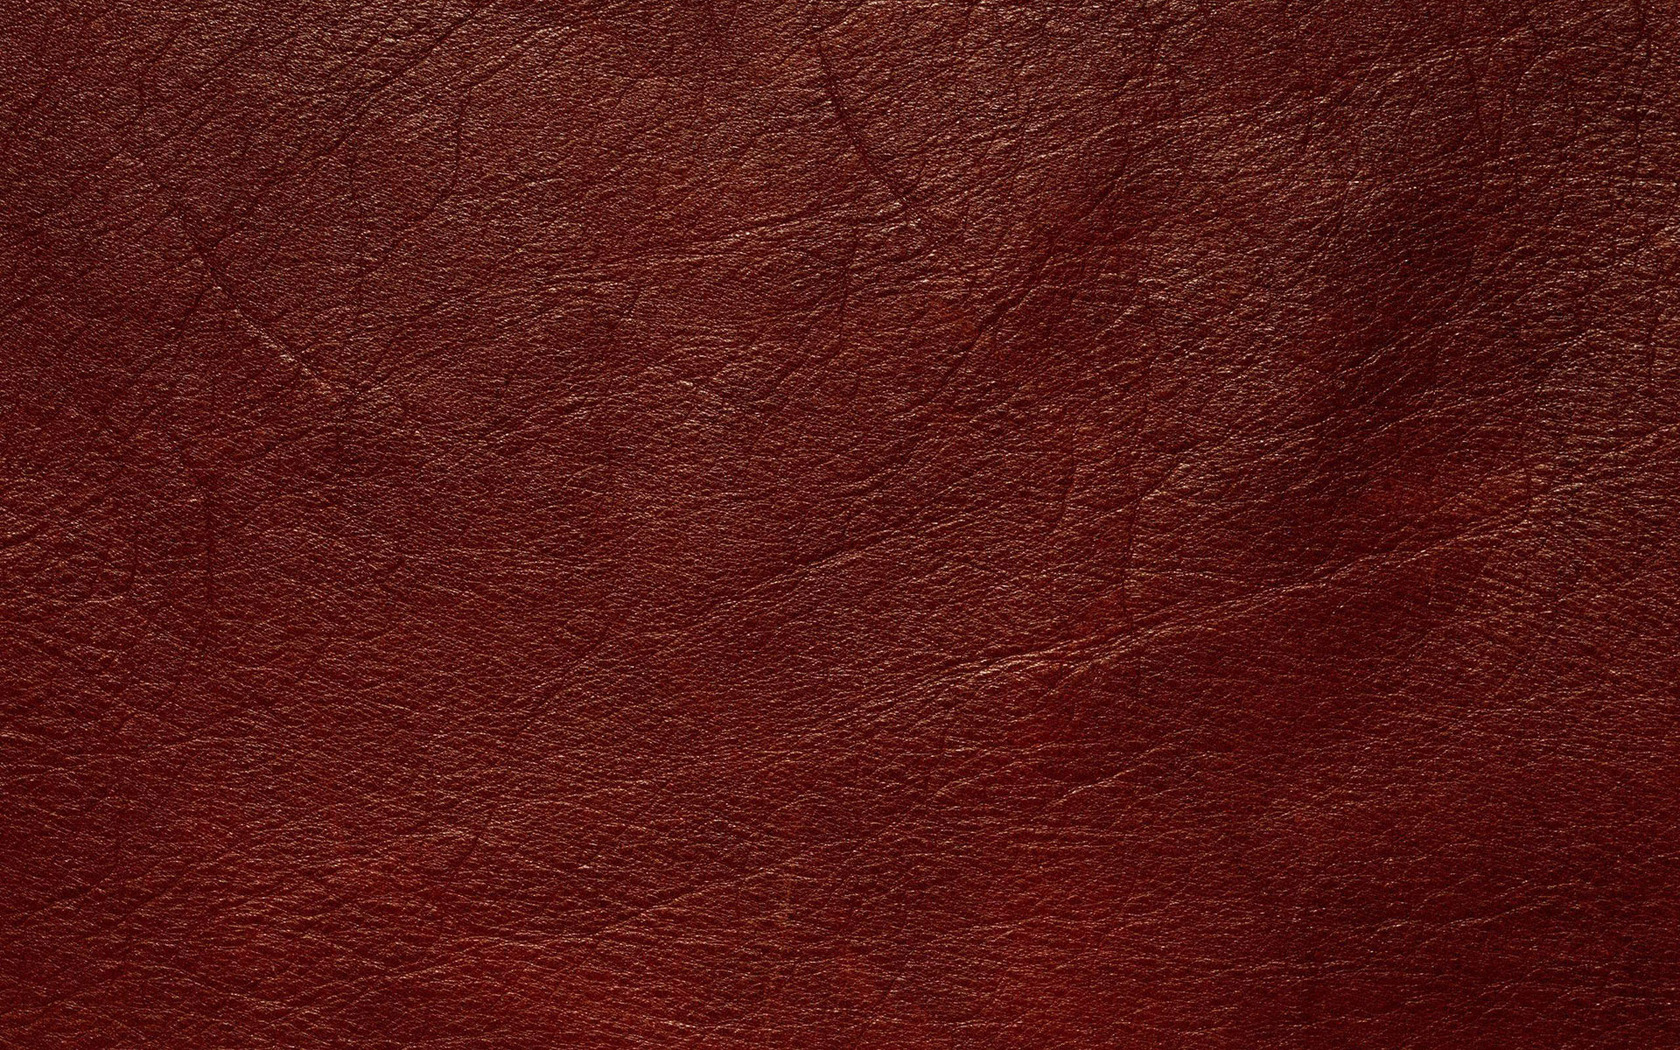 f89cd2035a948 46+] Leather Textured Wallpaper on WallpaperSafari